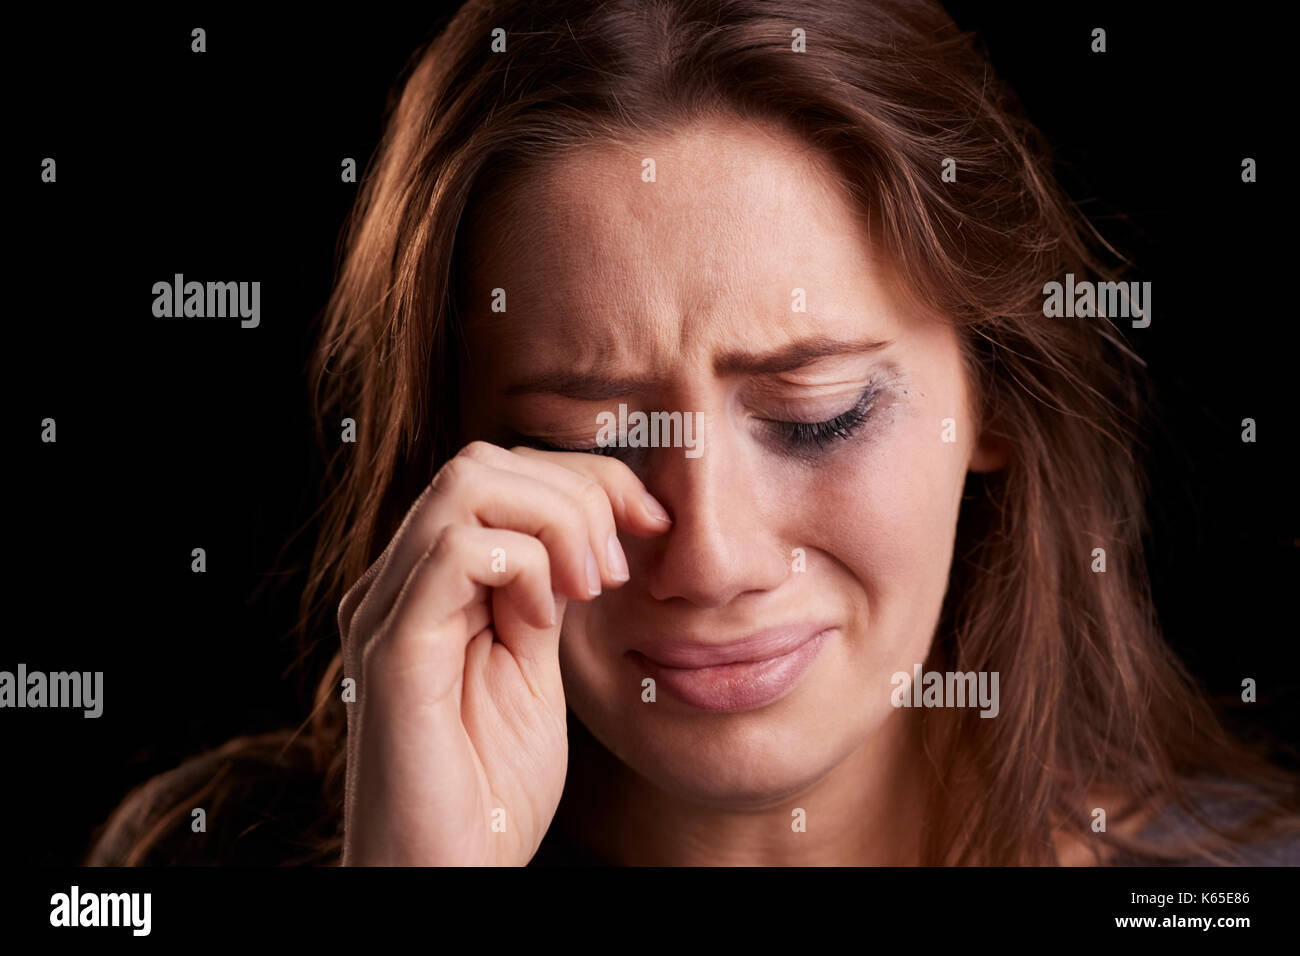 Studio Shot Of Crying Young Woman With Smudged Eye Make Up - Stock Image